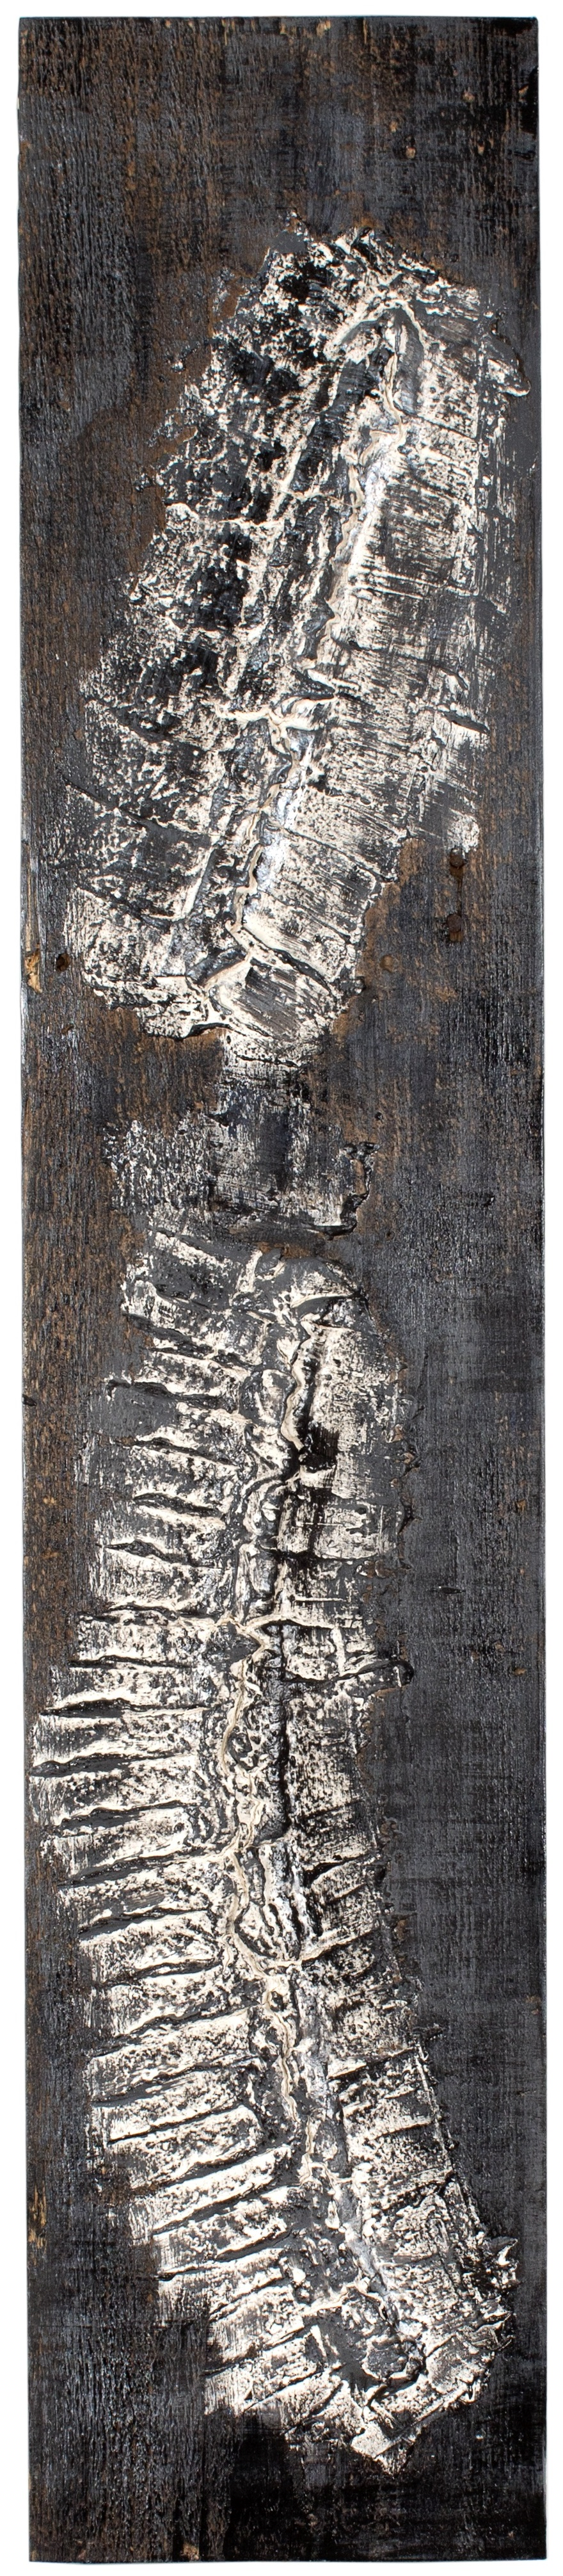 VERTEBRAE#4 - Plaster and acrylic on rough spruce board, 20x100cm - AVAILABLE